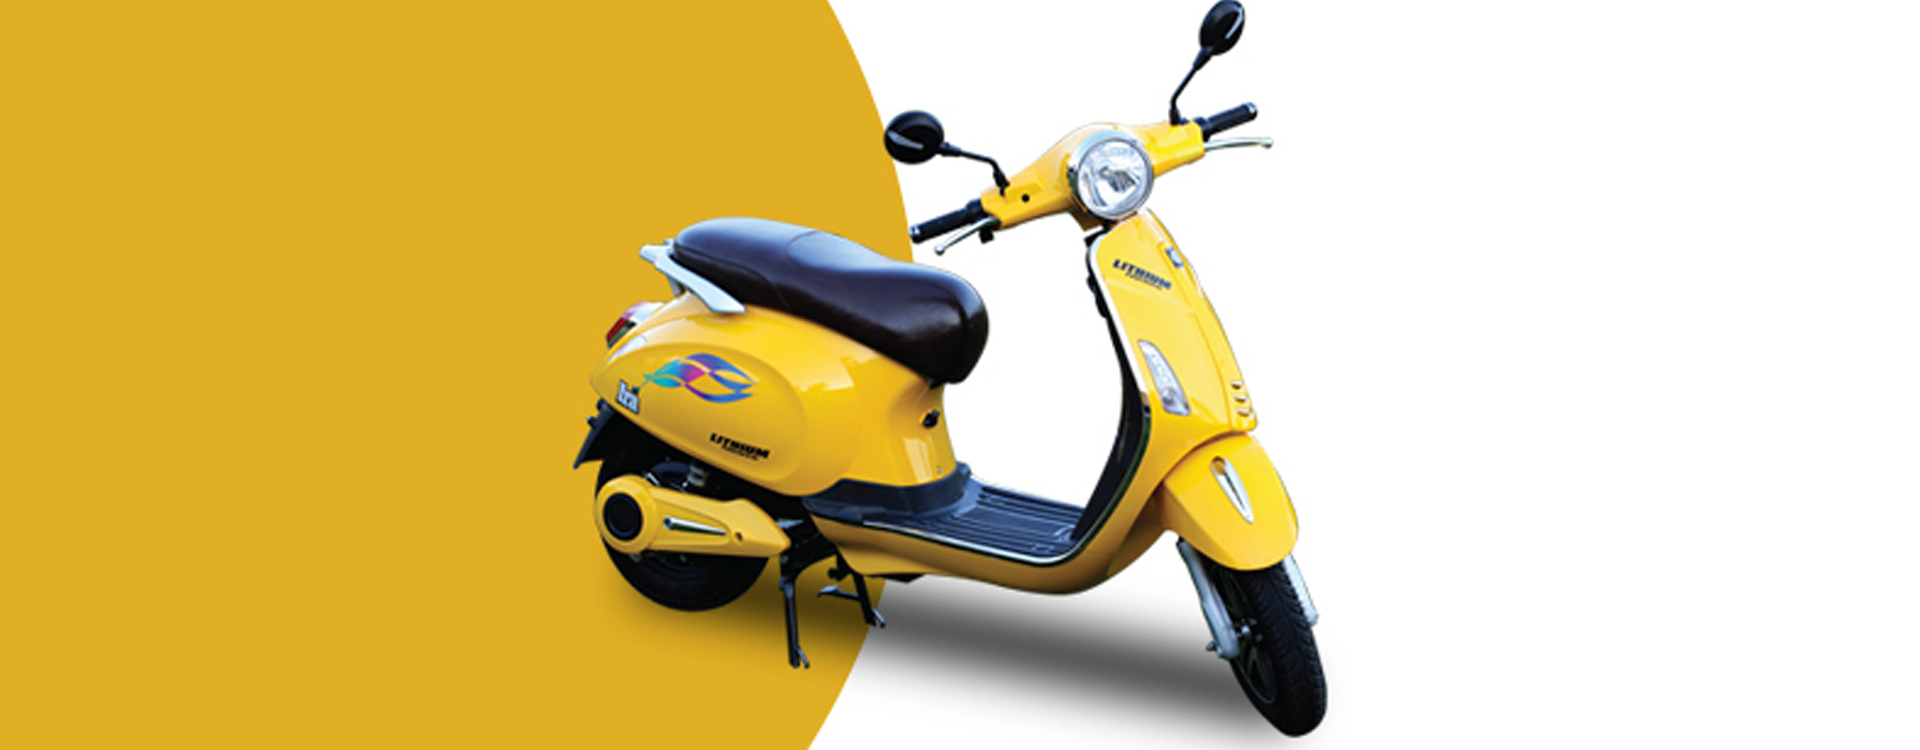 IRA electric scooter Specification